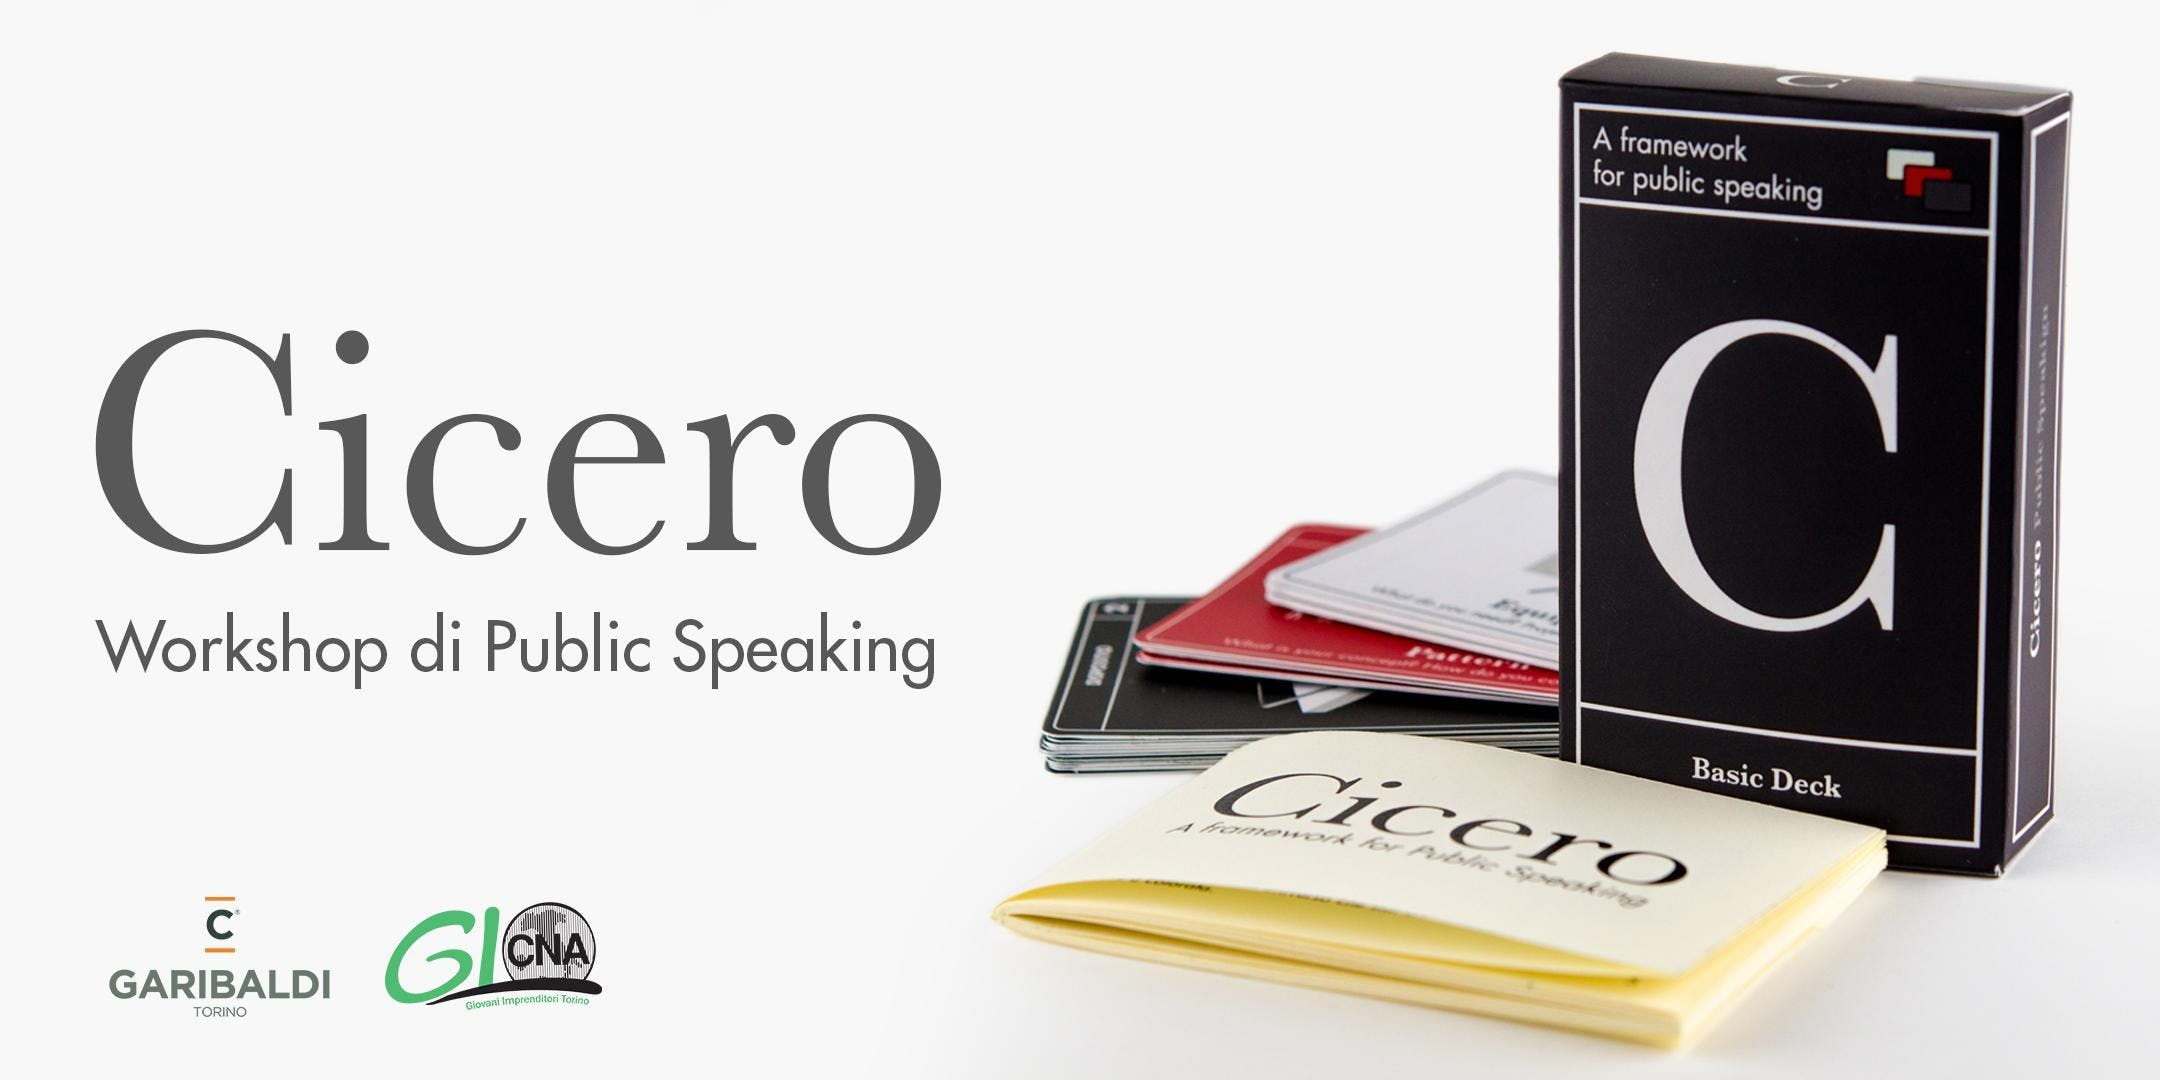 Workshop di Public Speaking con Cicero